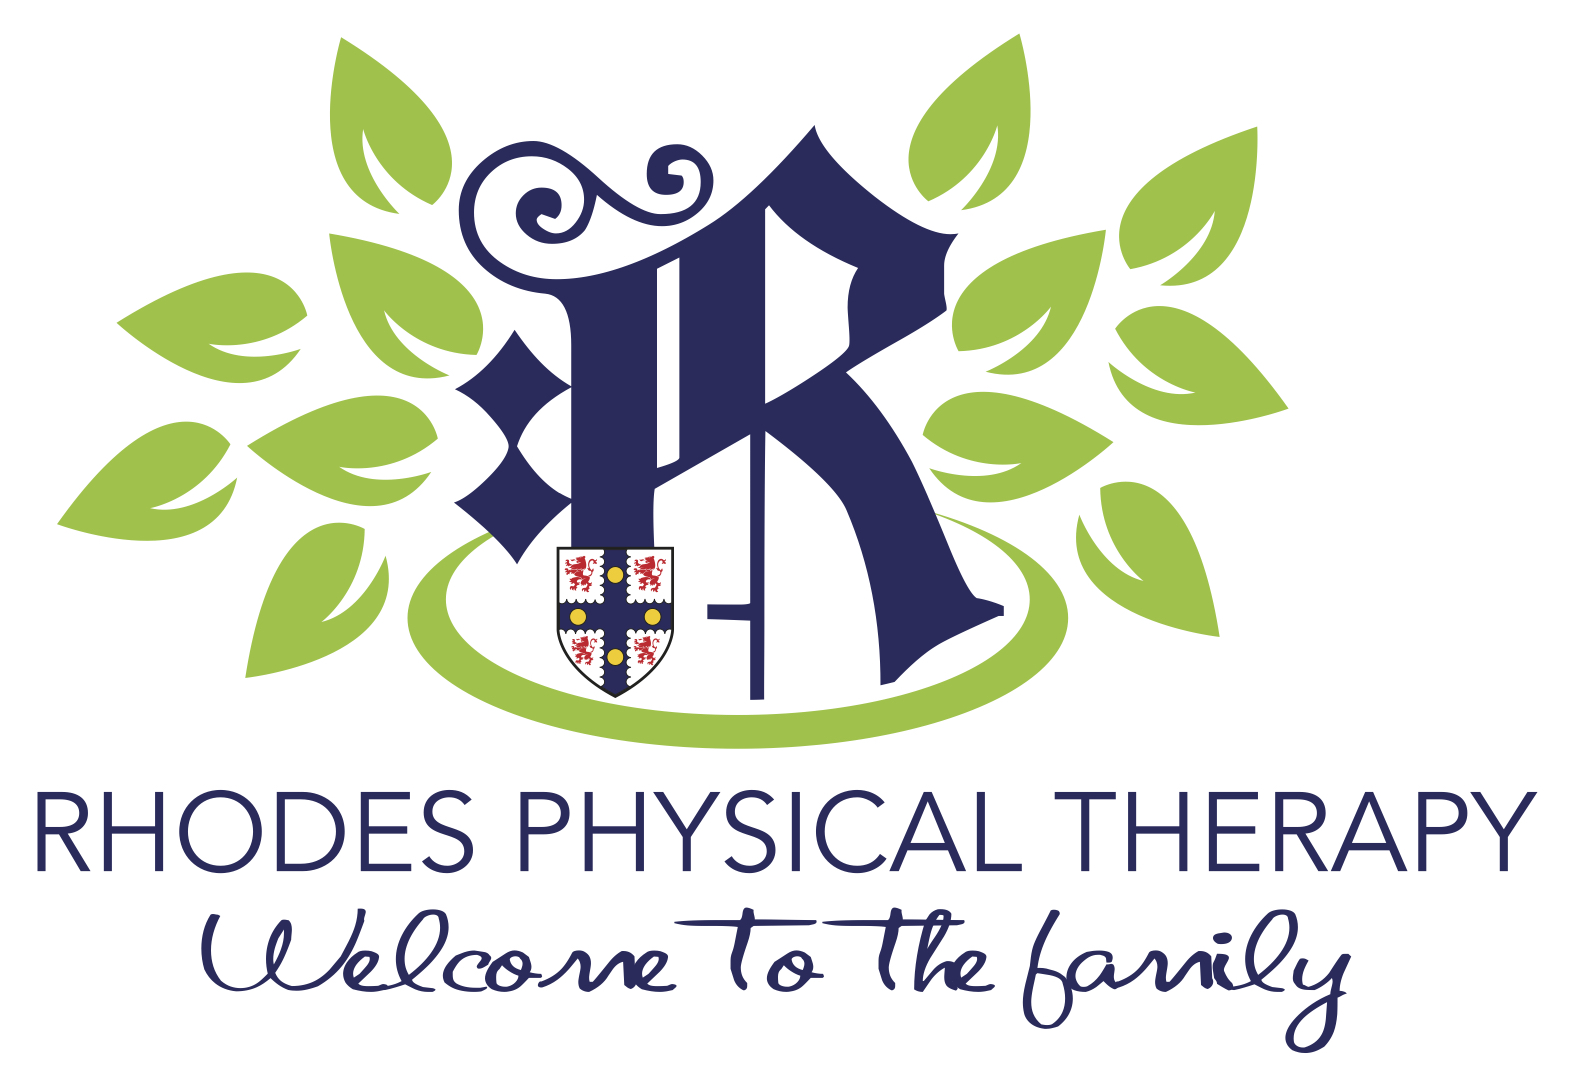 Rhodes Physical Therapy